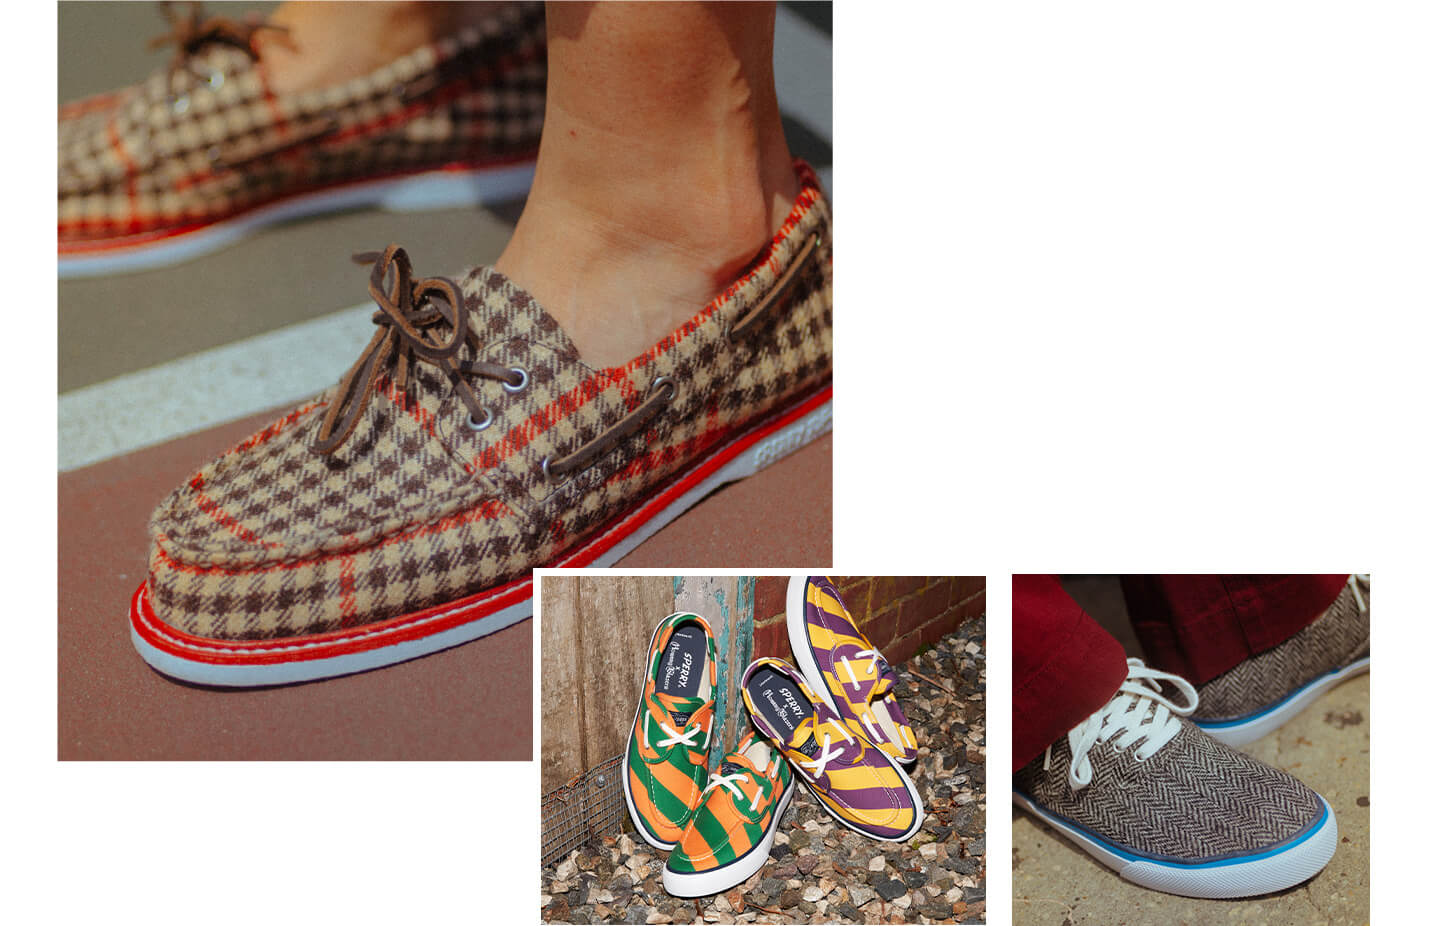 Collage of shoes from the Rowing Blazers collection.